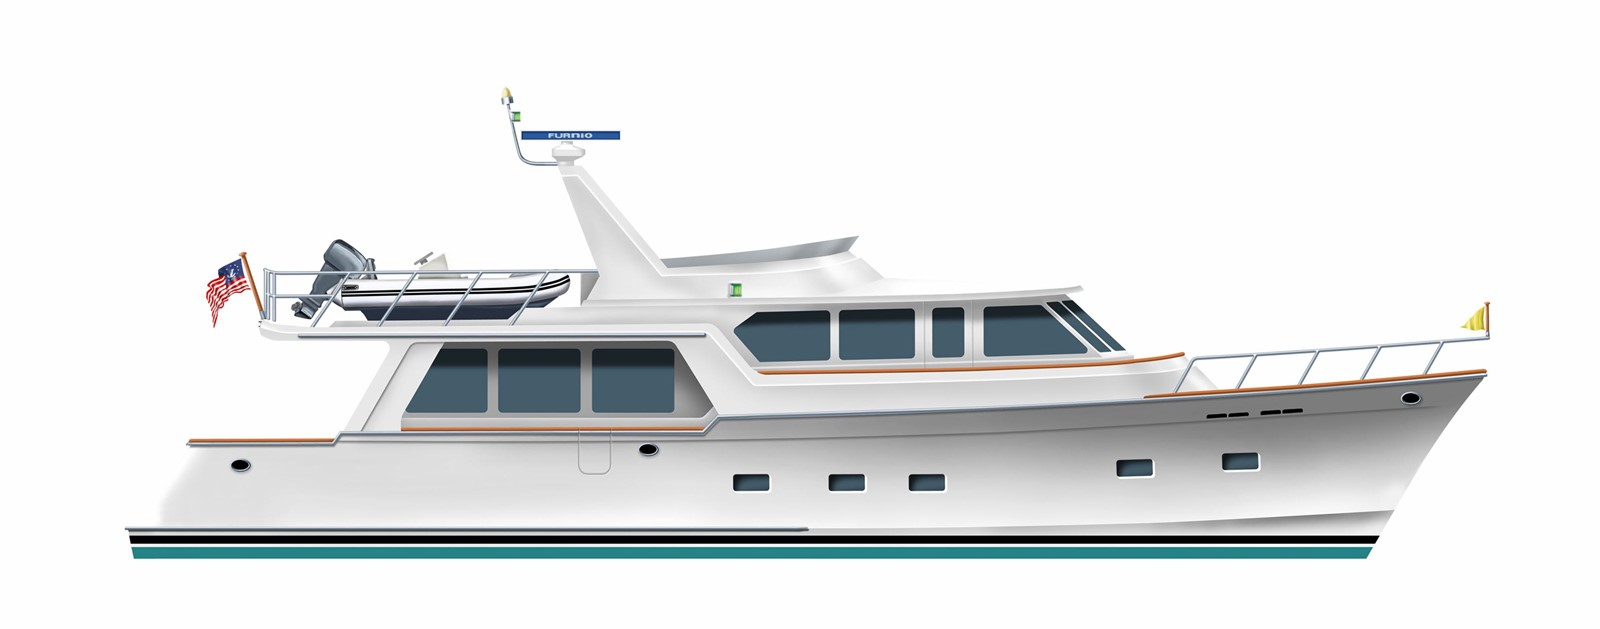 2020 OFFSHORE YACHTS Pilothouse Voyager Motor Yacht 2571172